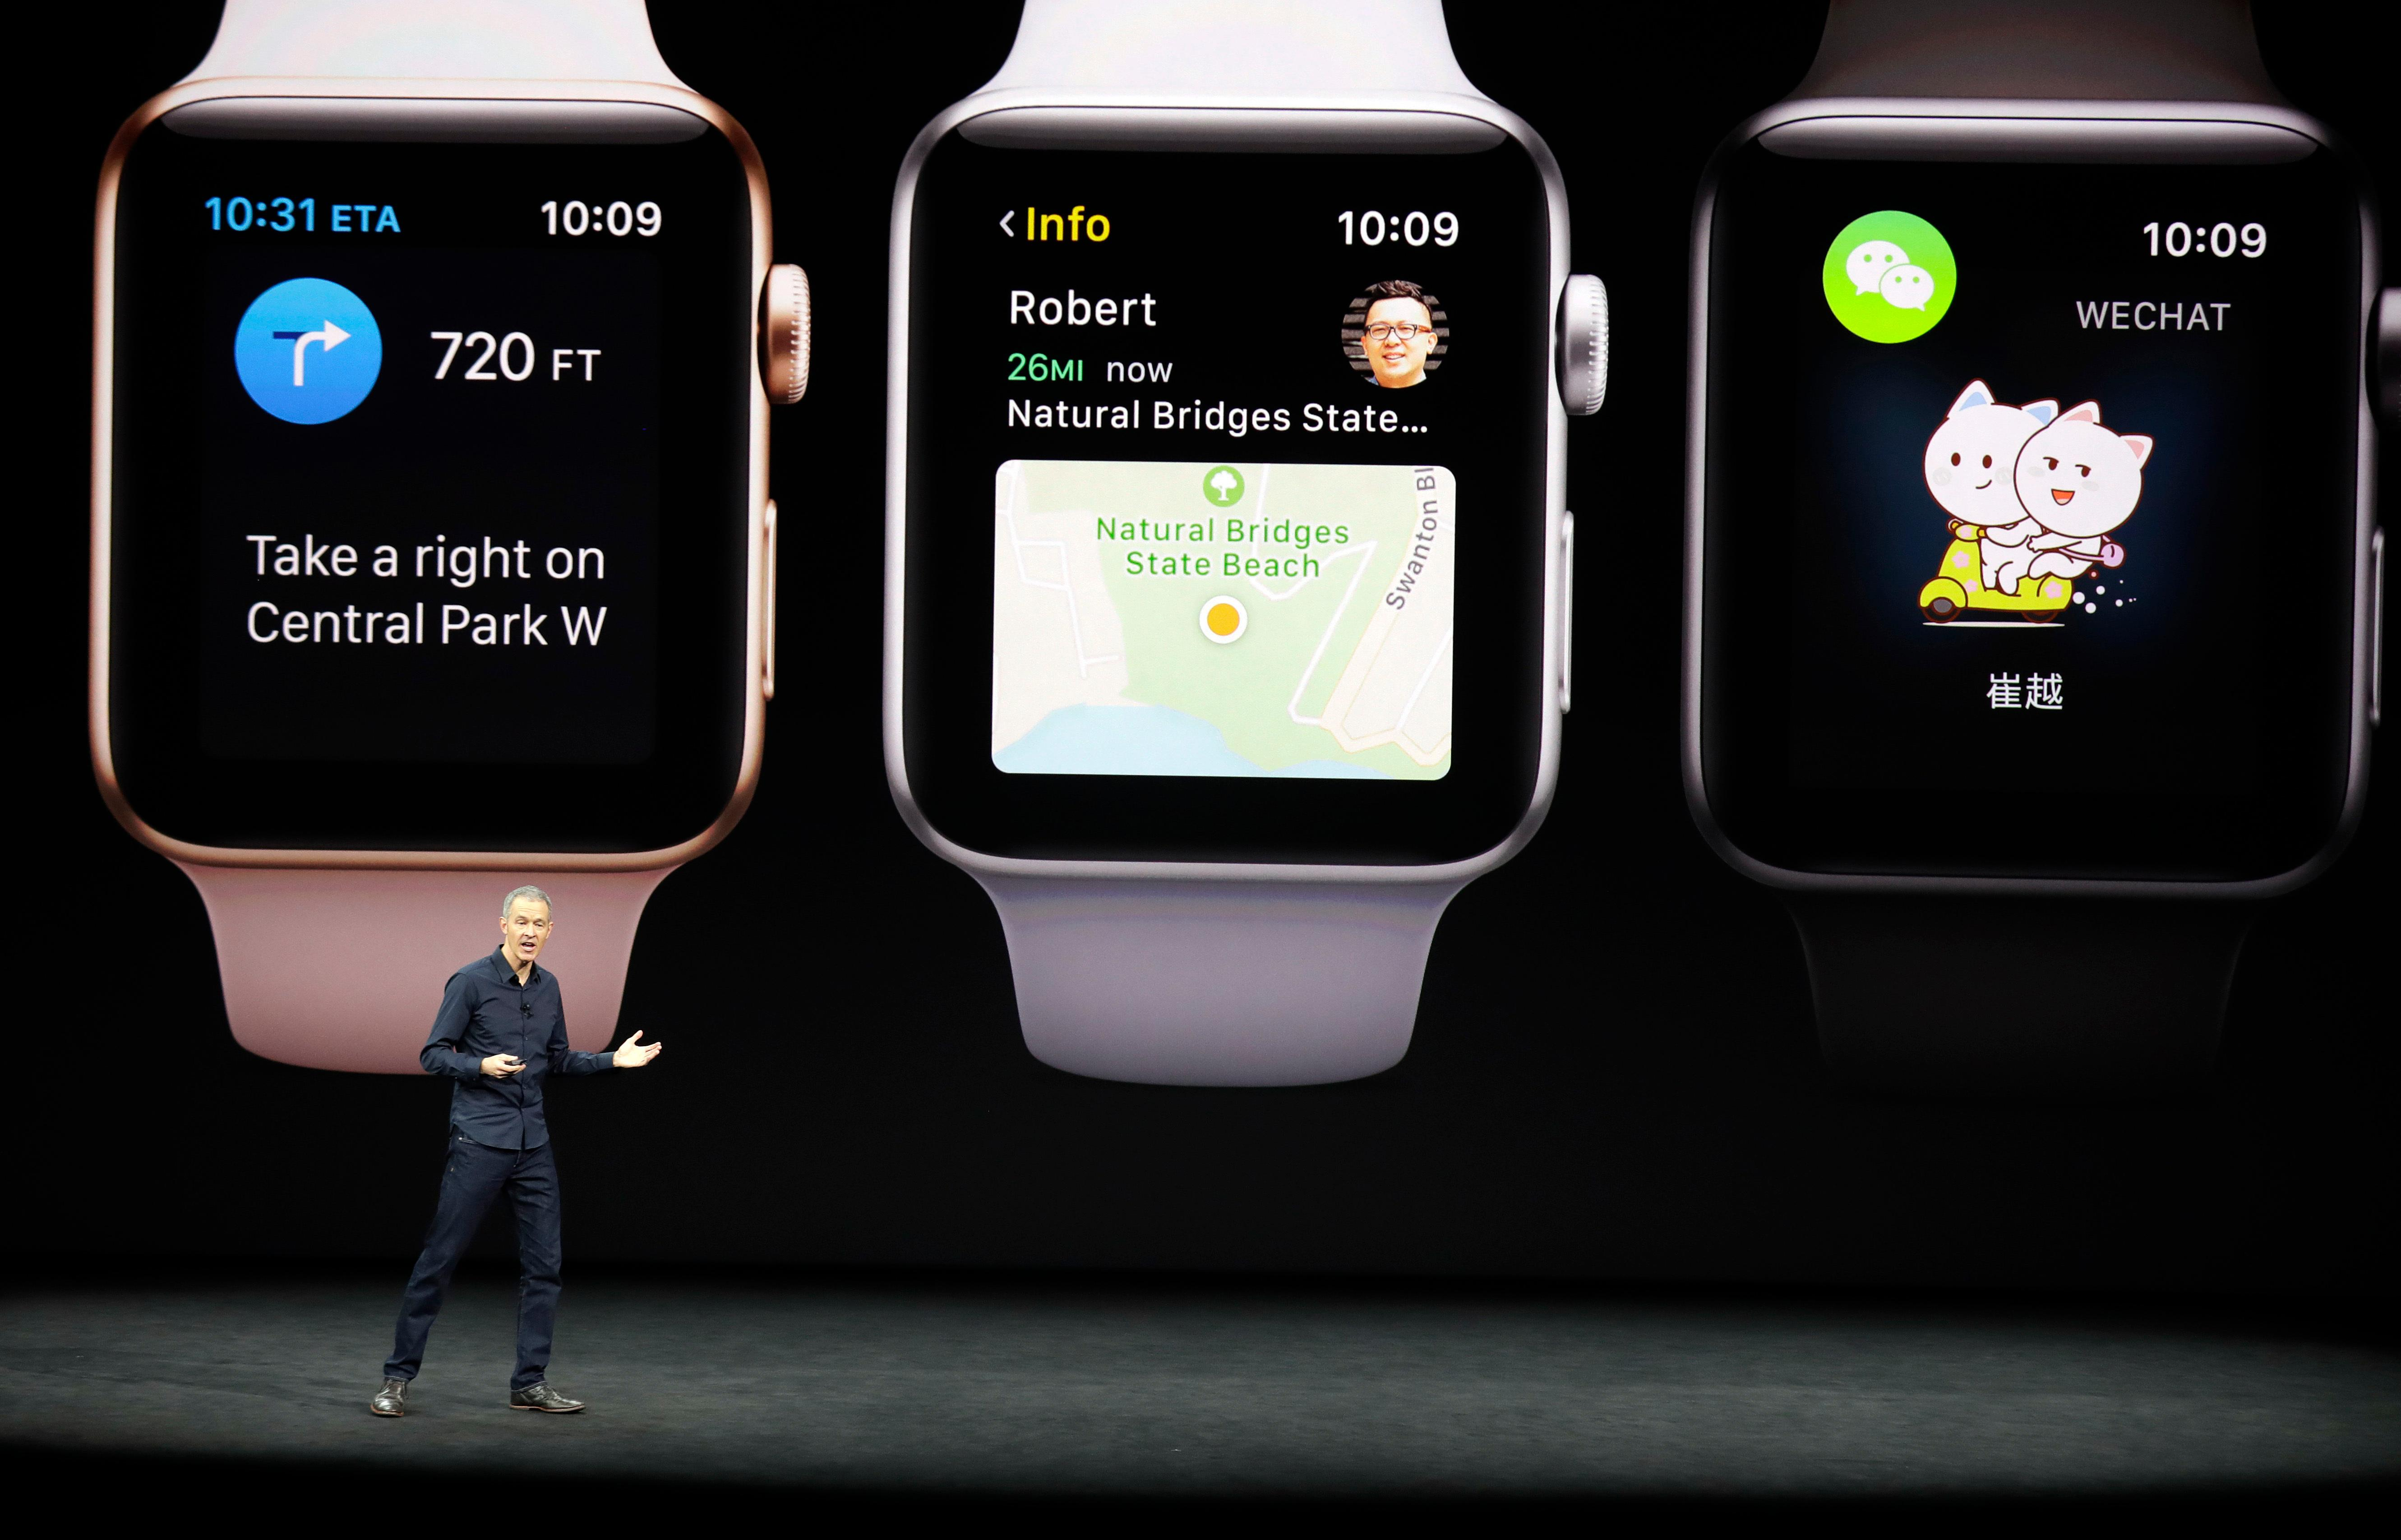 Jeff Williams, Apple's chief operating officer, shows new Apple Watch products at the Steve Jobs Theater on the new Apple campus on Tuesday, Sept. 12, 2017, in Cupertino, Calif. (AP Photo/Marcio Jose Sanchez)